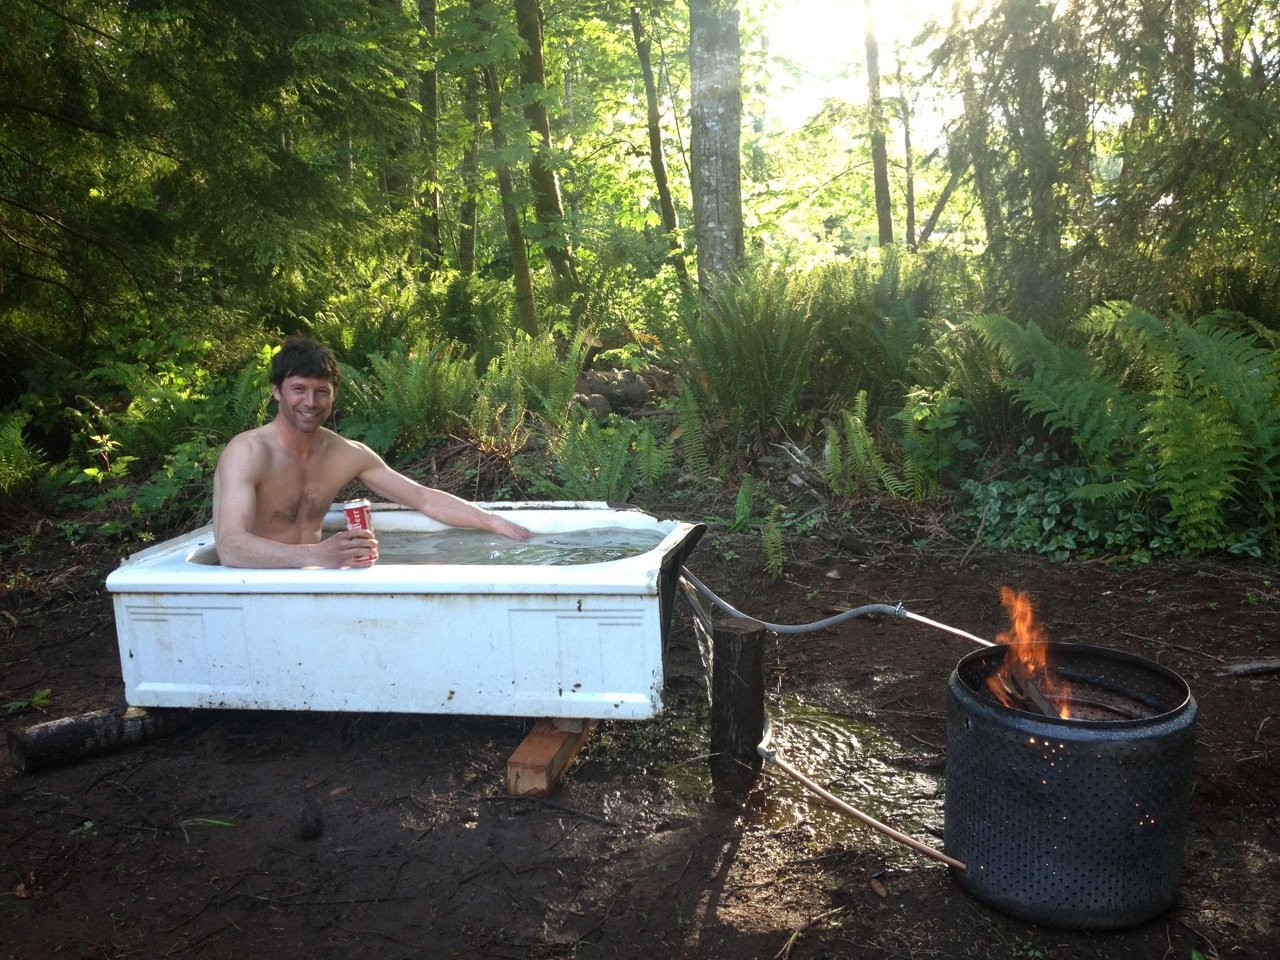 Building a Backcountry Hot Tub | Teton Gravity Research